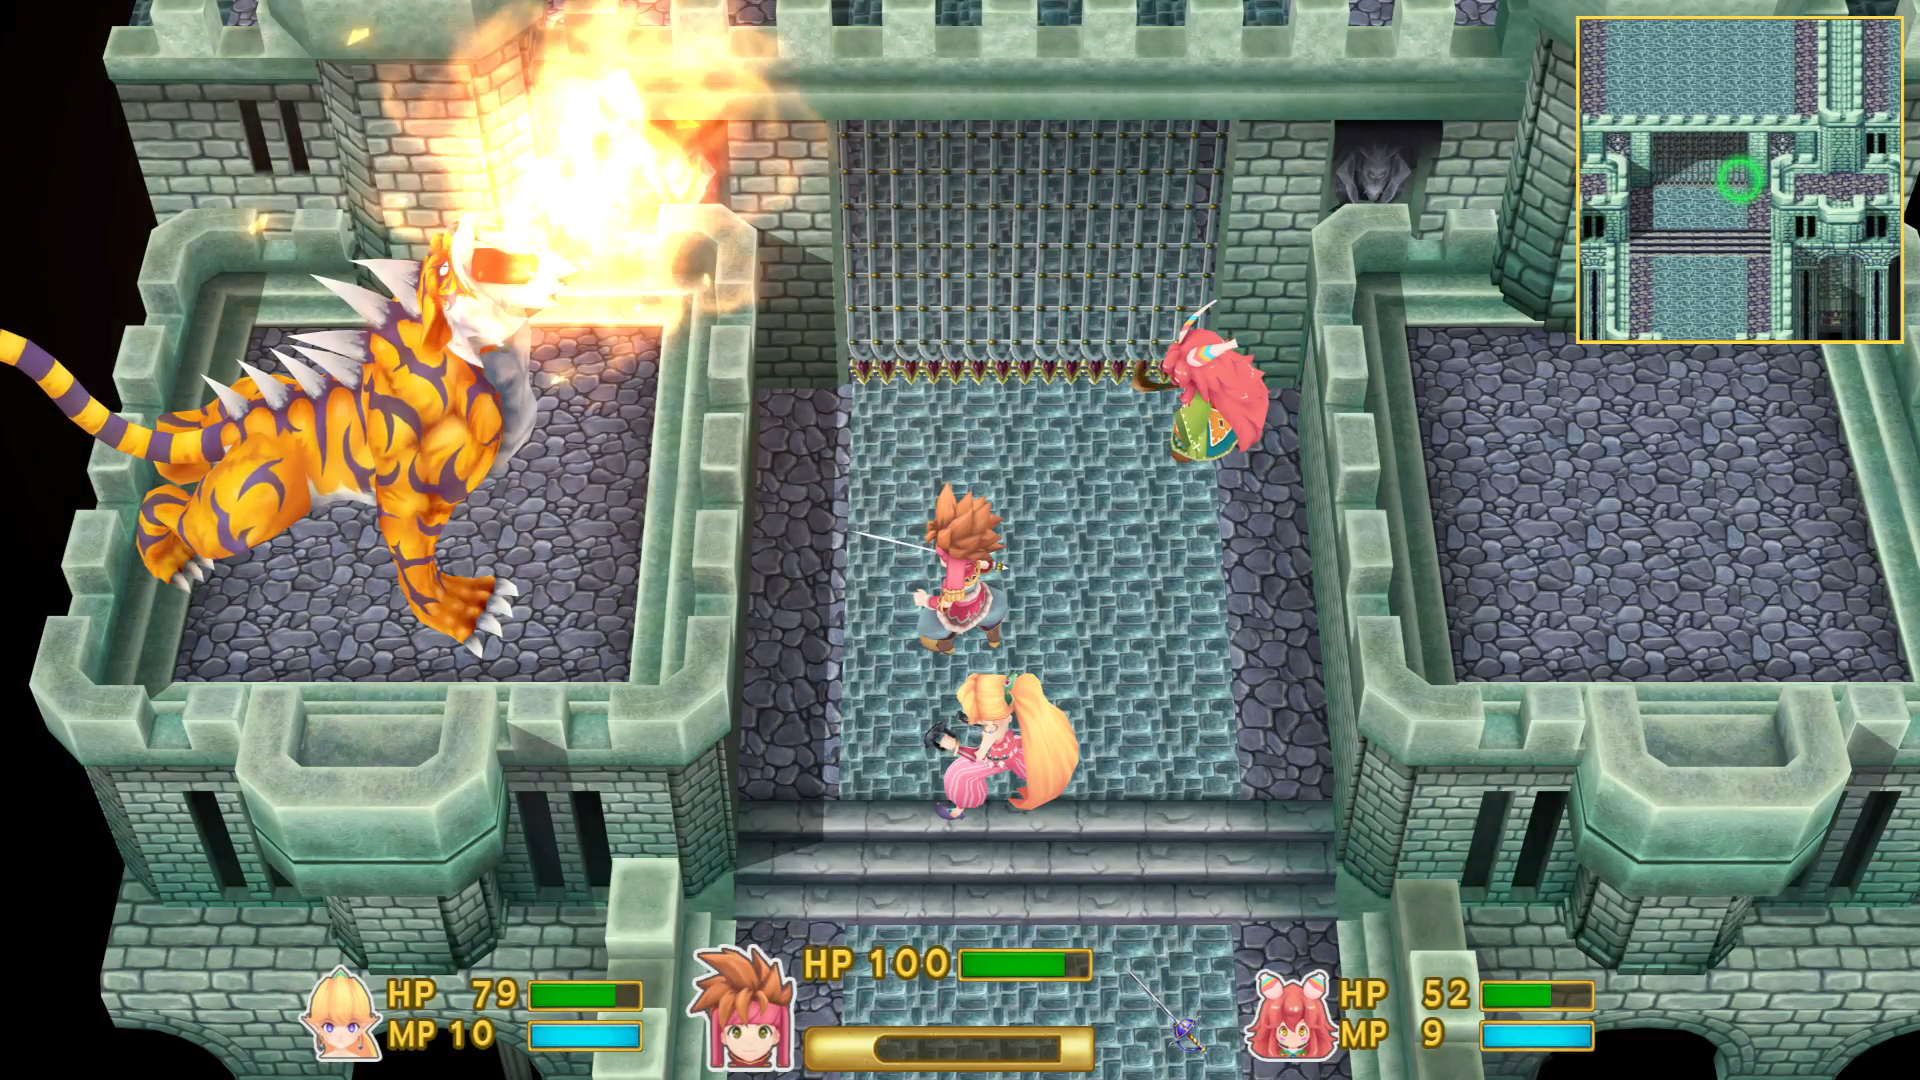 Secret of Mana  sur PS4, Vita et Steam 1503646643-2306-capture-d-ecran